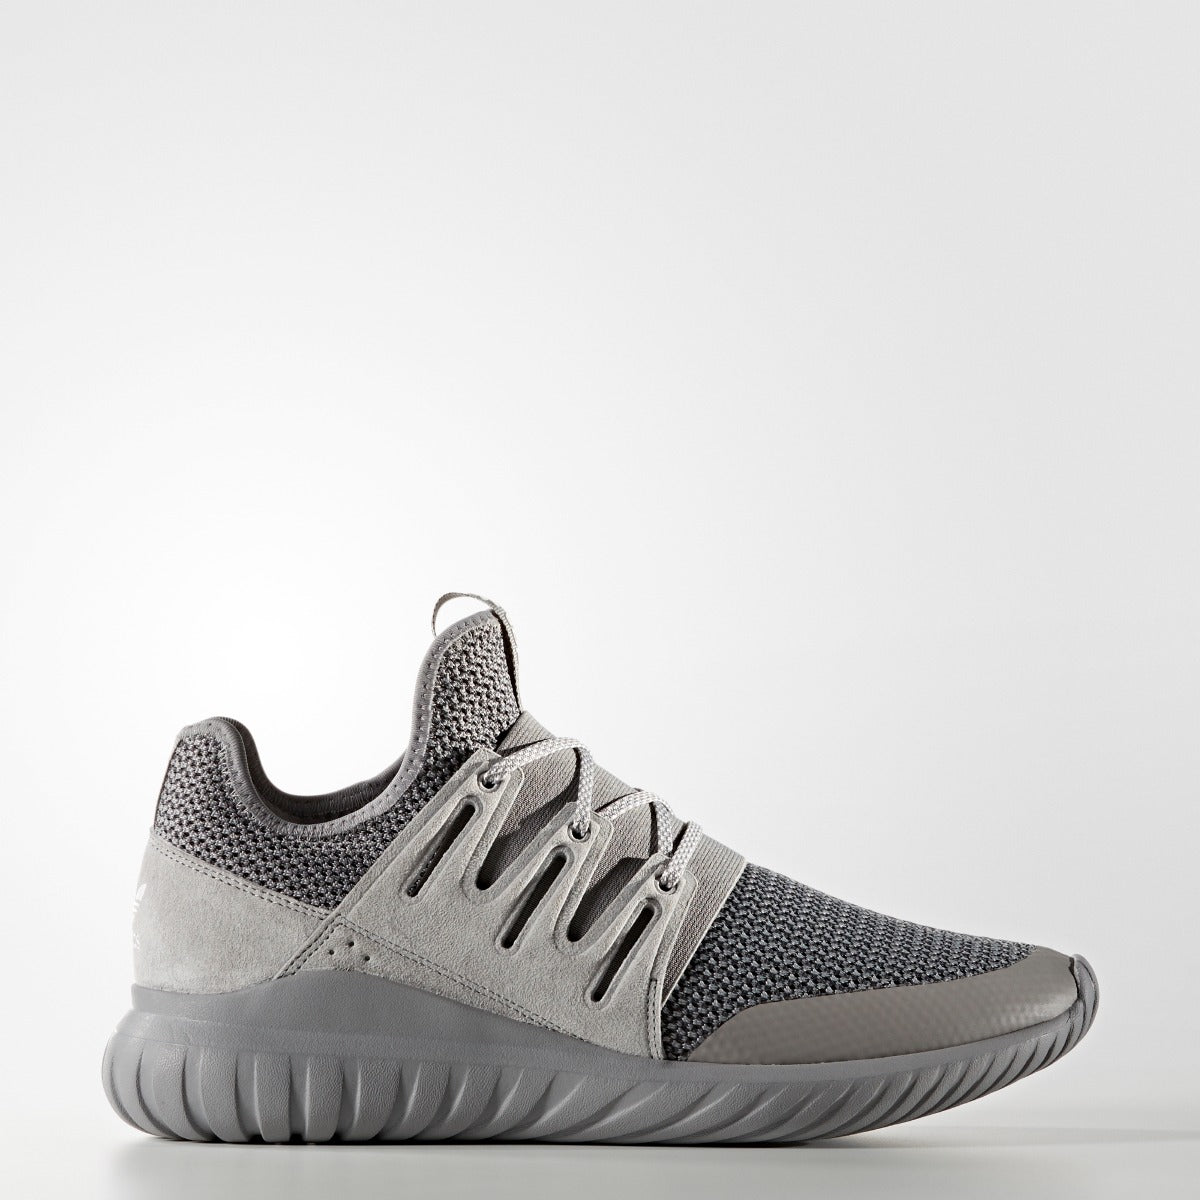 check out 0a4dd 61d2f Men s adidas Originals Tubular Radial Shoes Charcoal Solid Grey